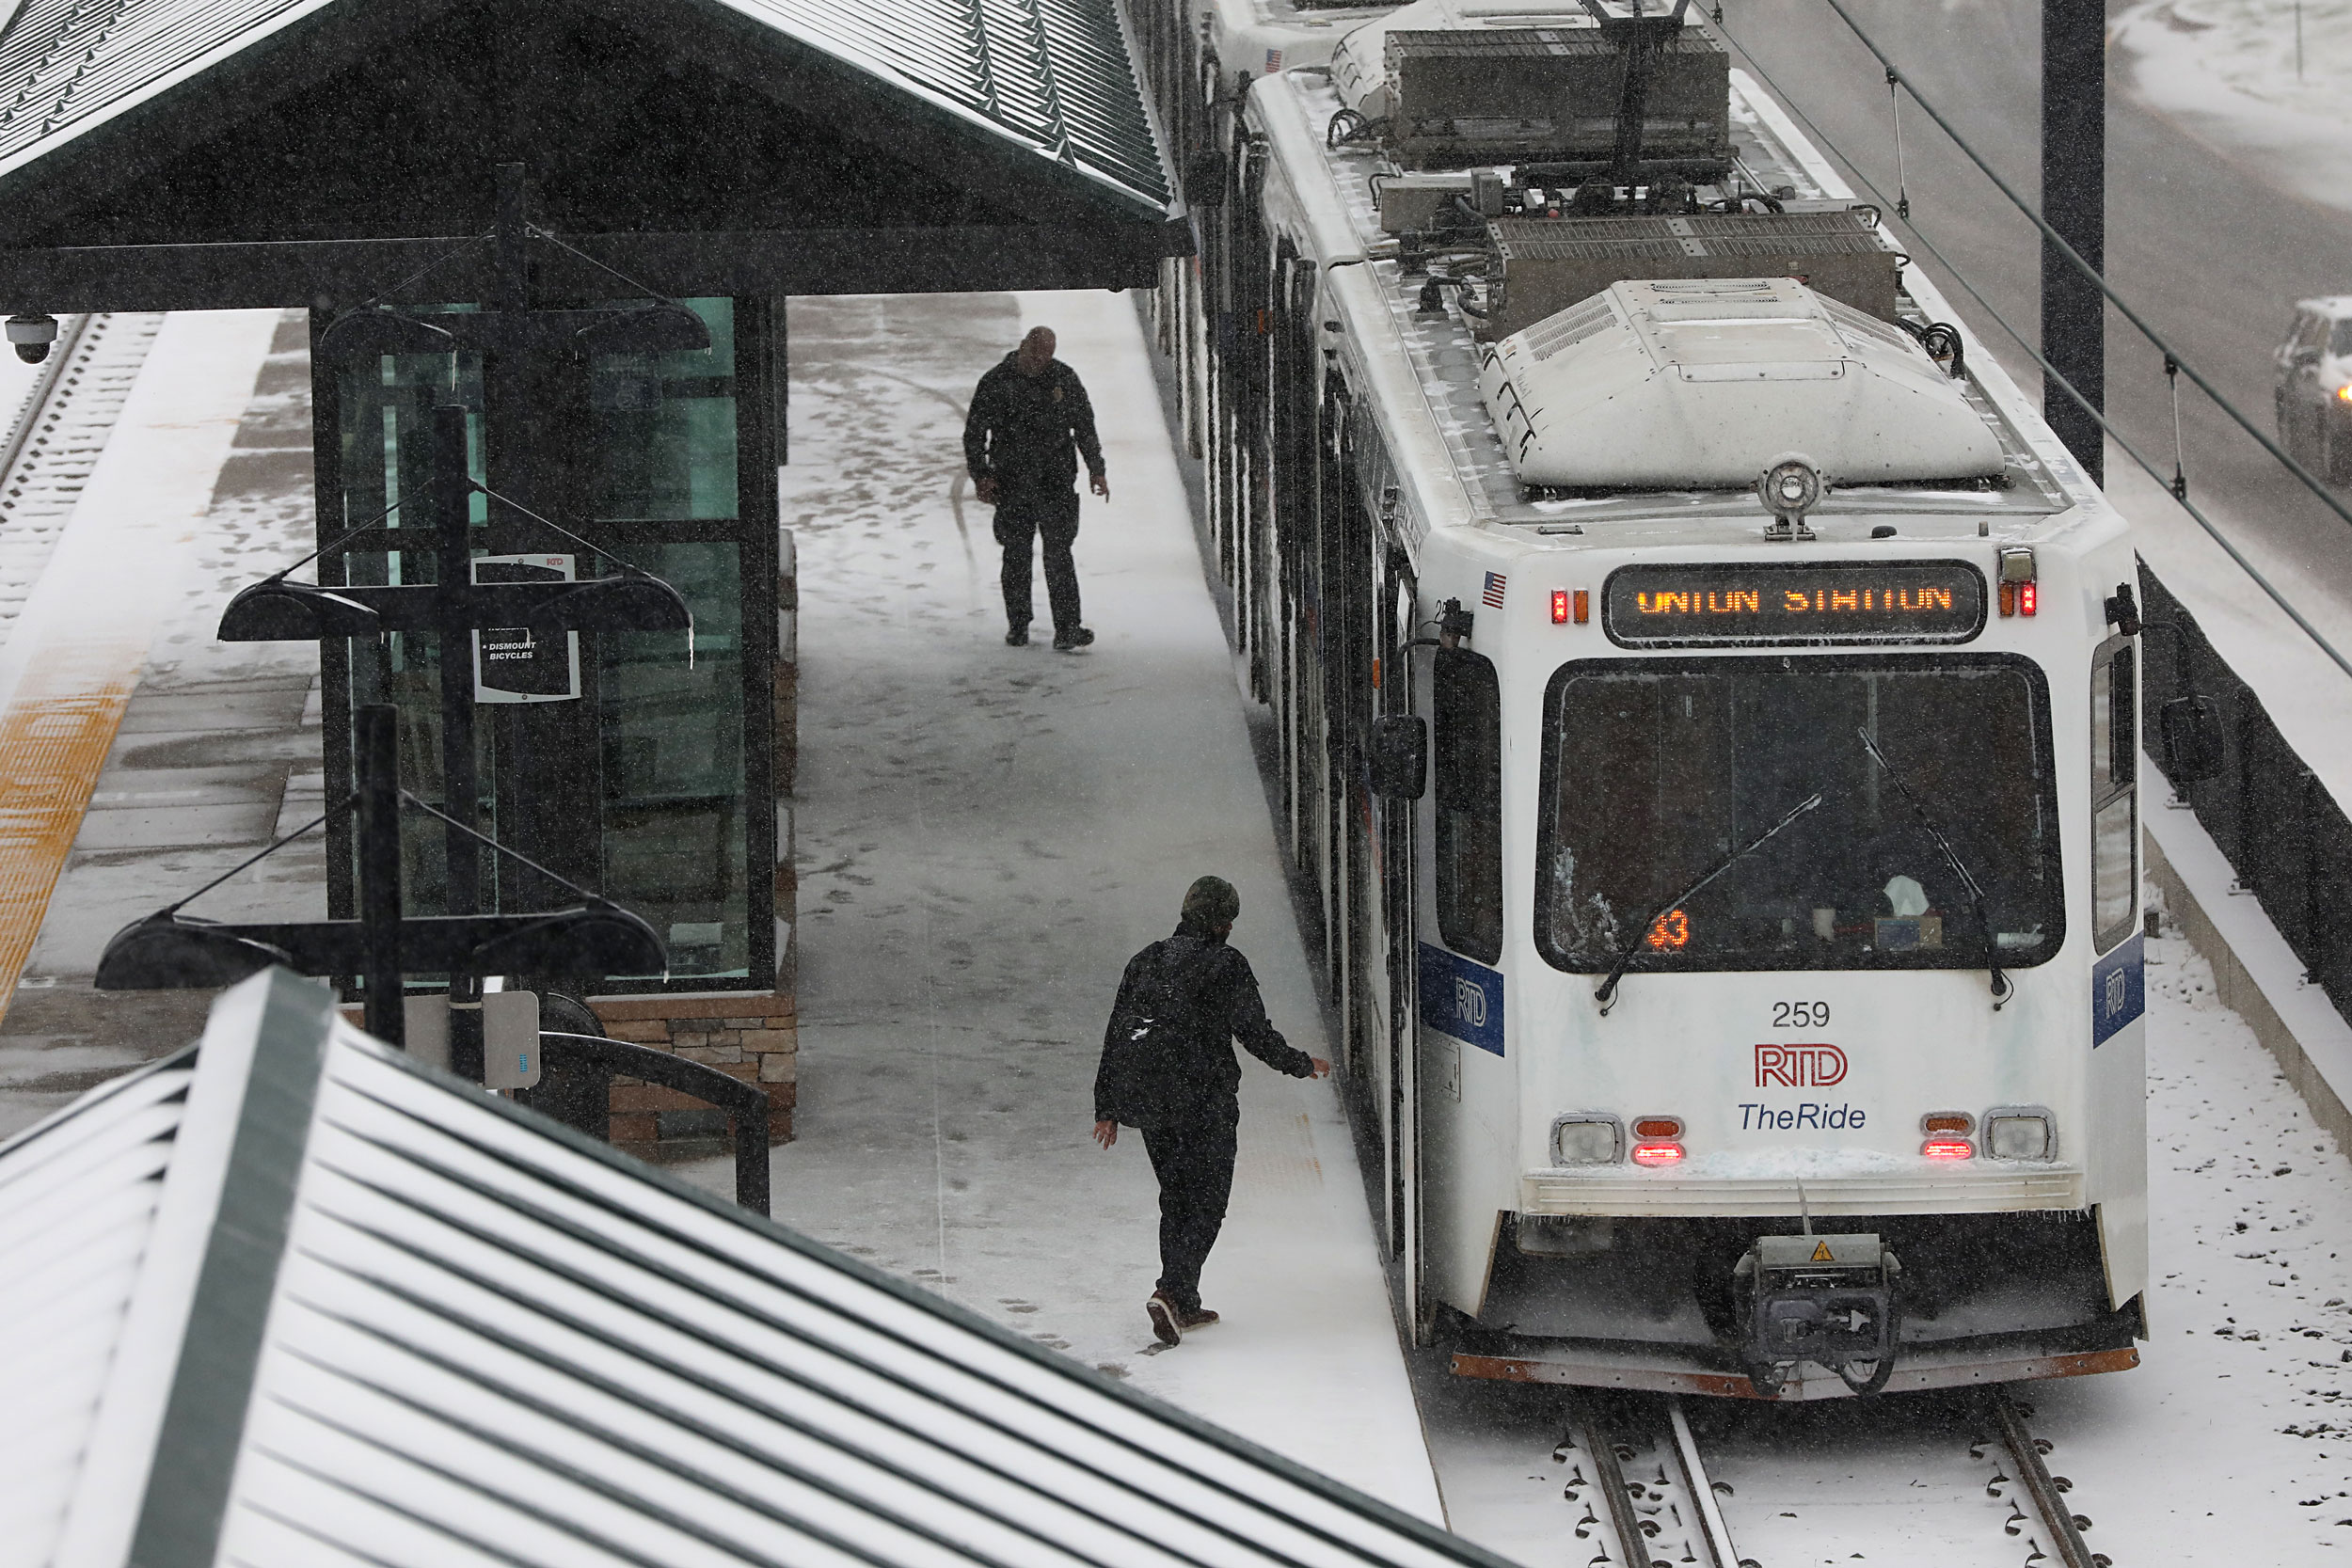 The Denver metro commute was slow Thursday morning Oct. 10 as the season's first snow fell on the north and central Rockies and the Front Range. An RTD light rail train stopped at the Dry Creek Station.